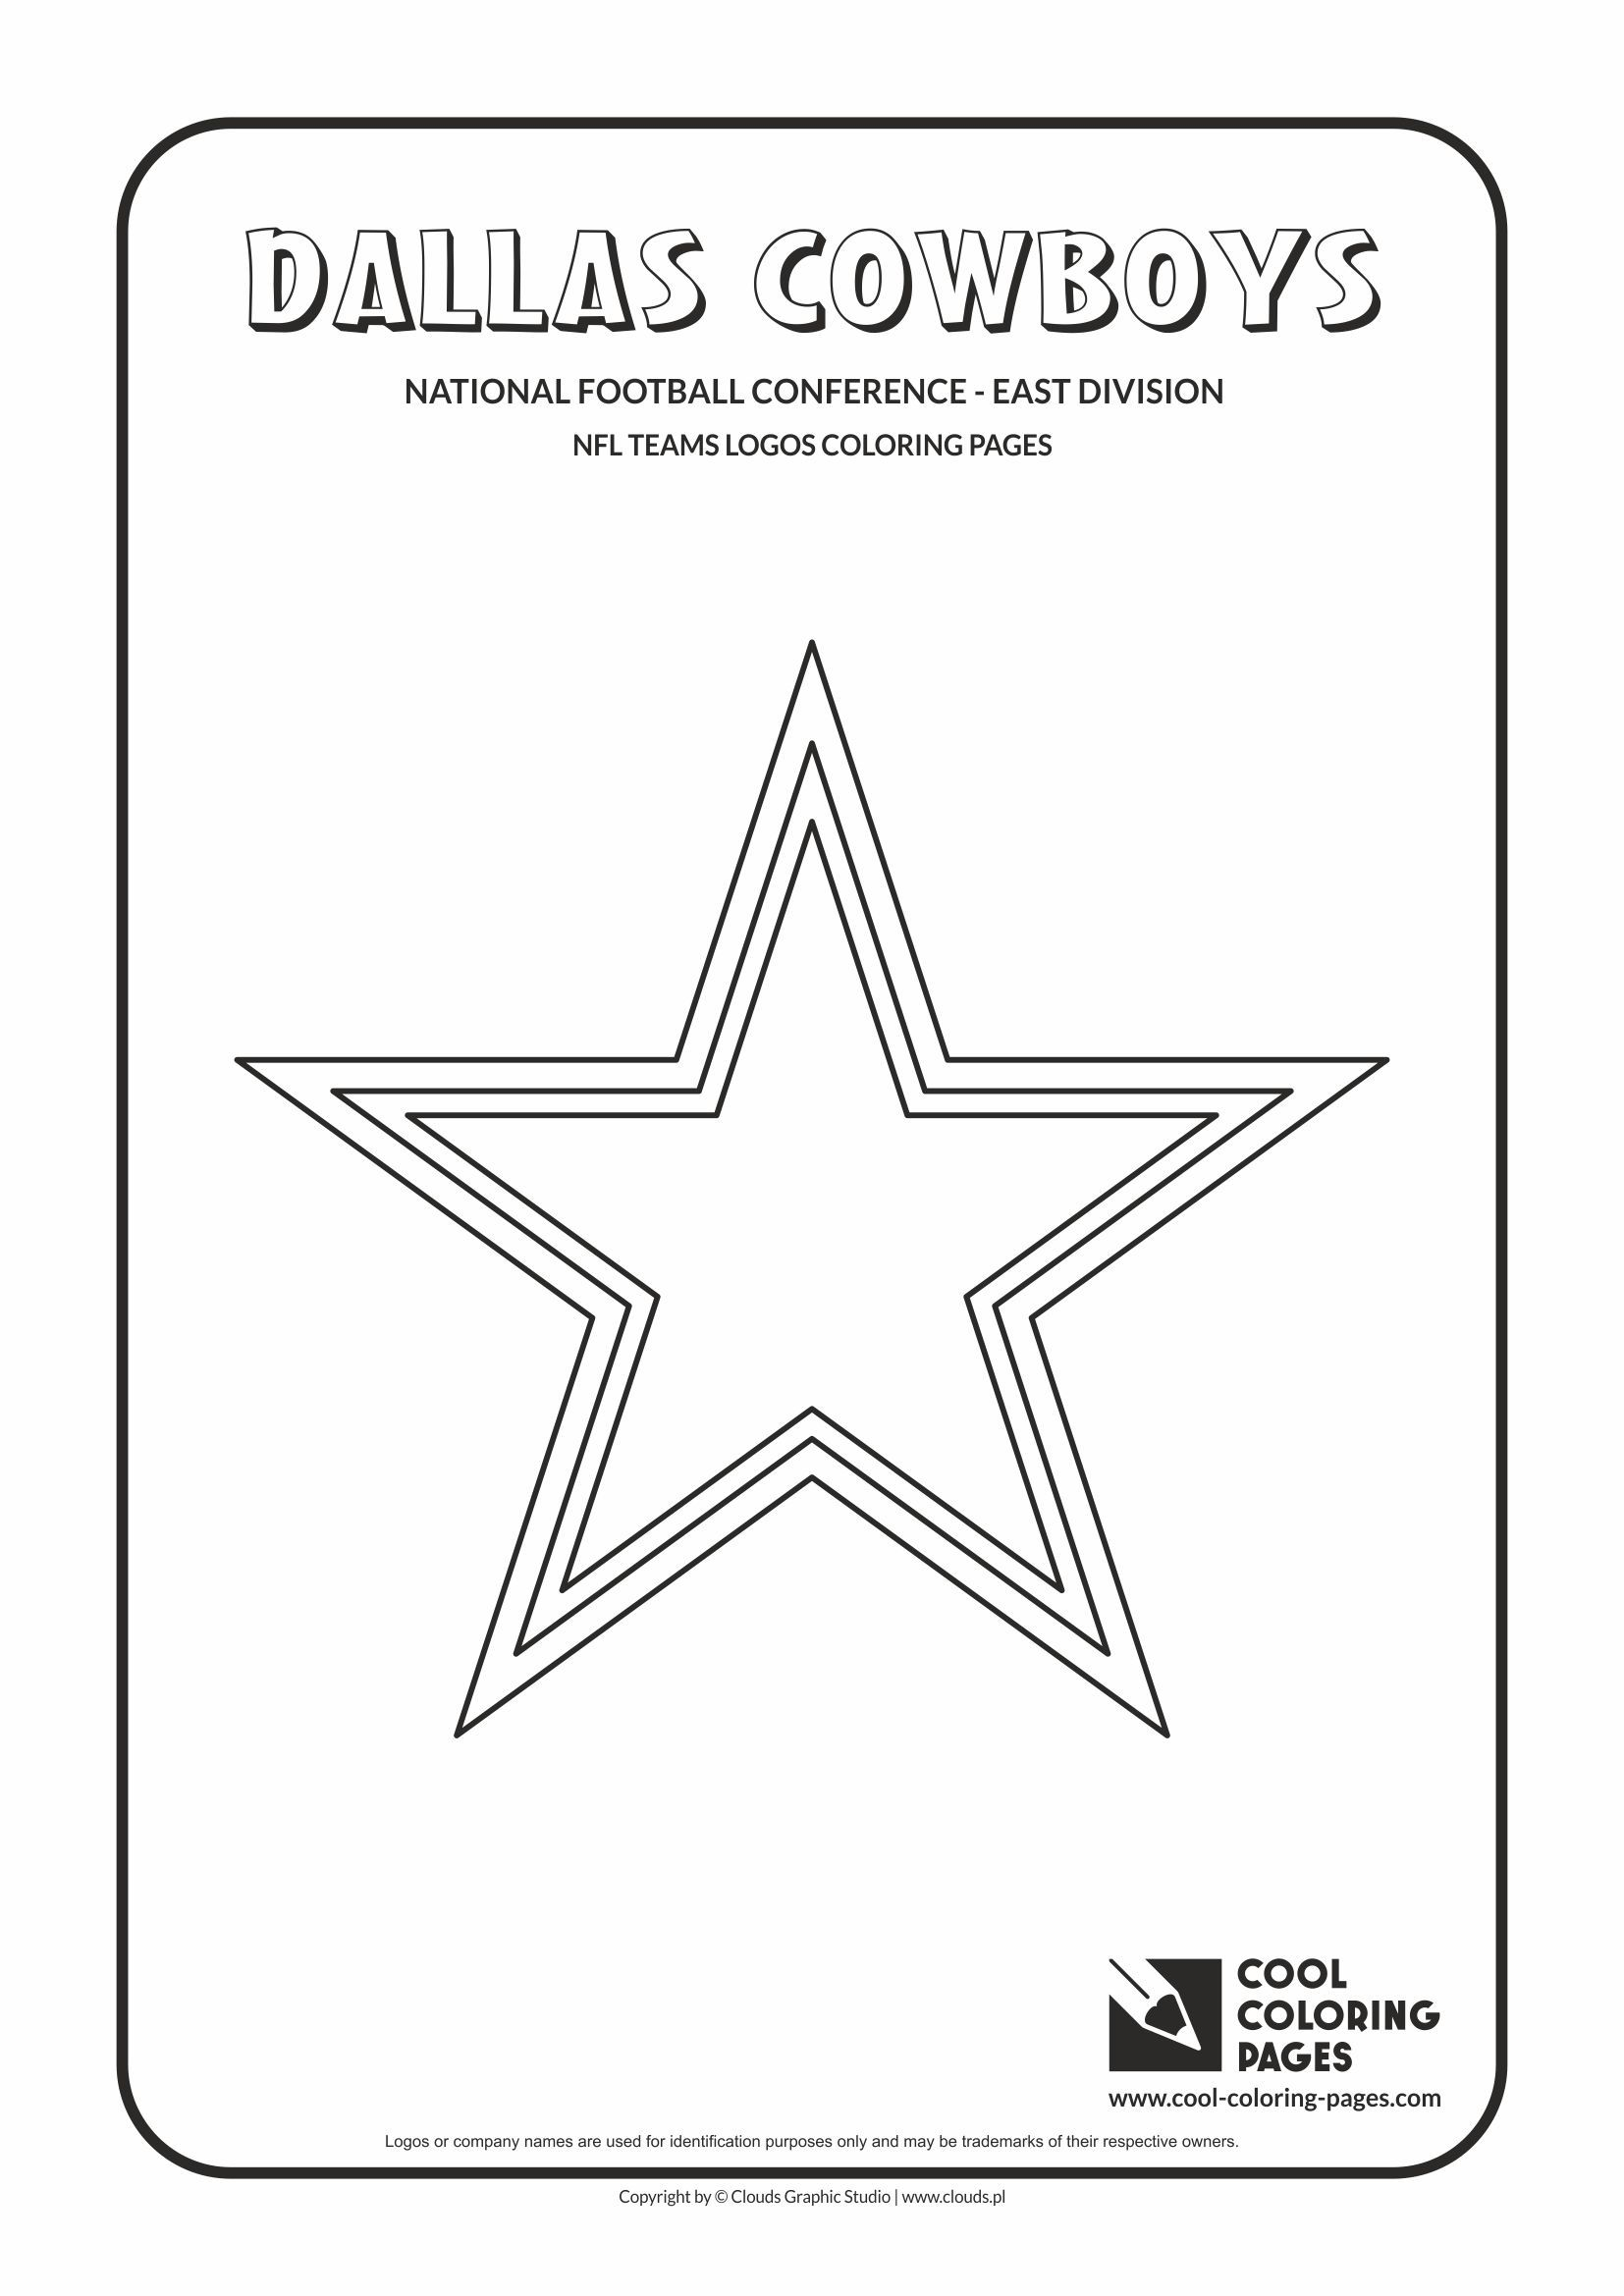 cool coloring pages nfl american football clubs logos national football